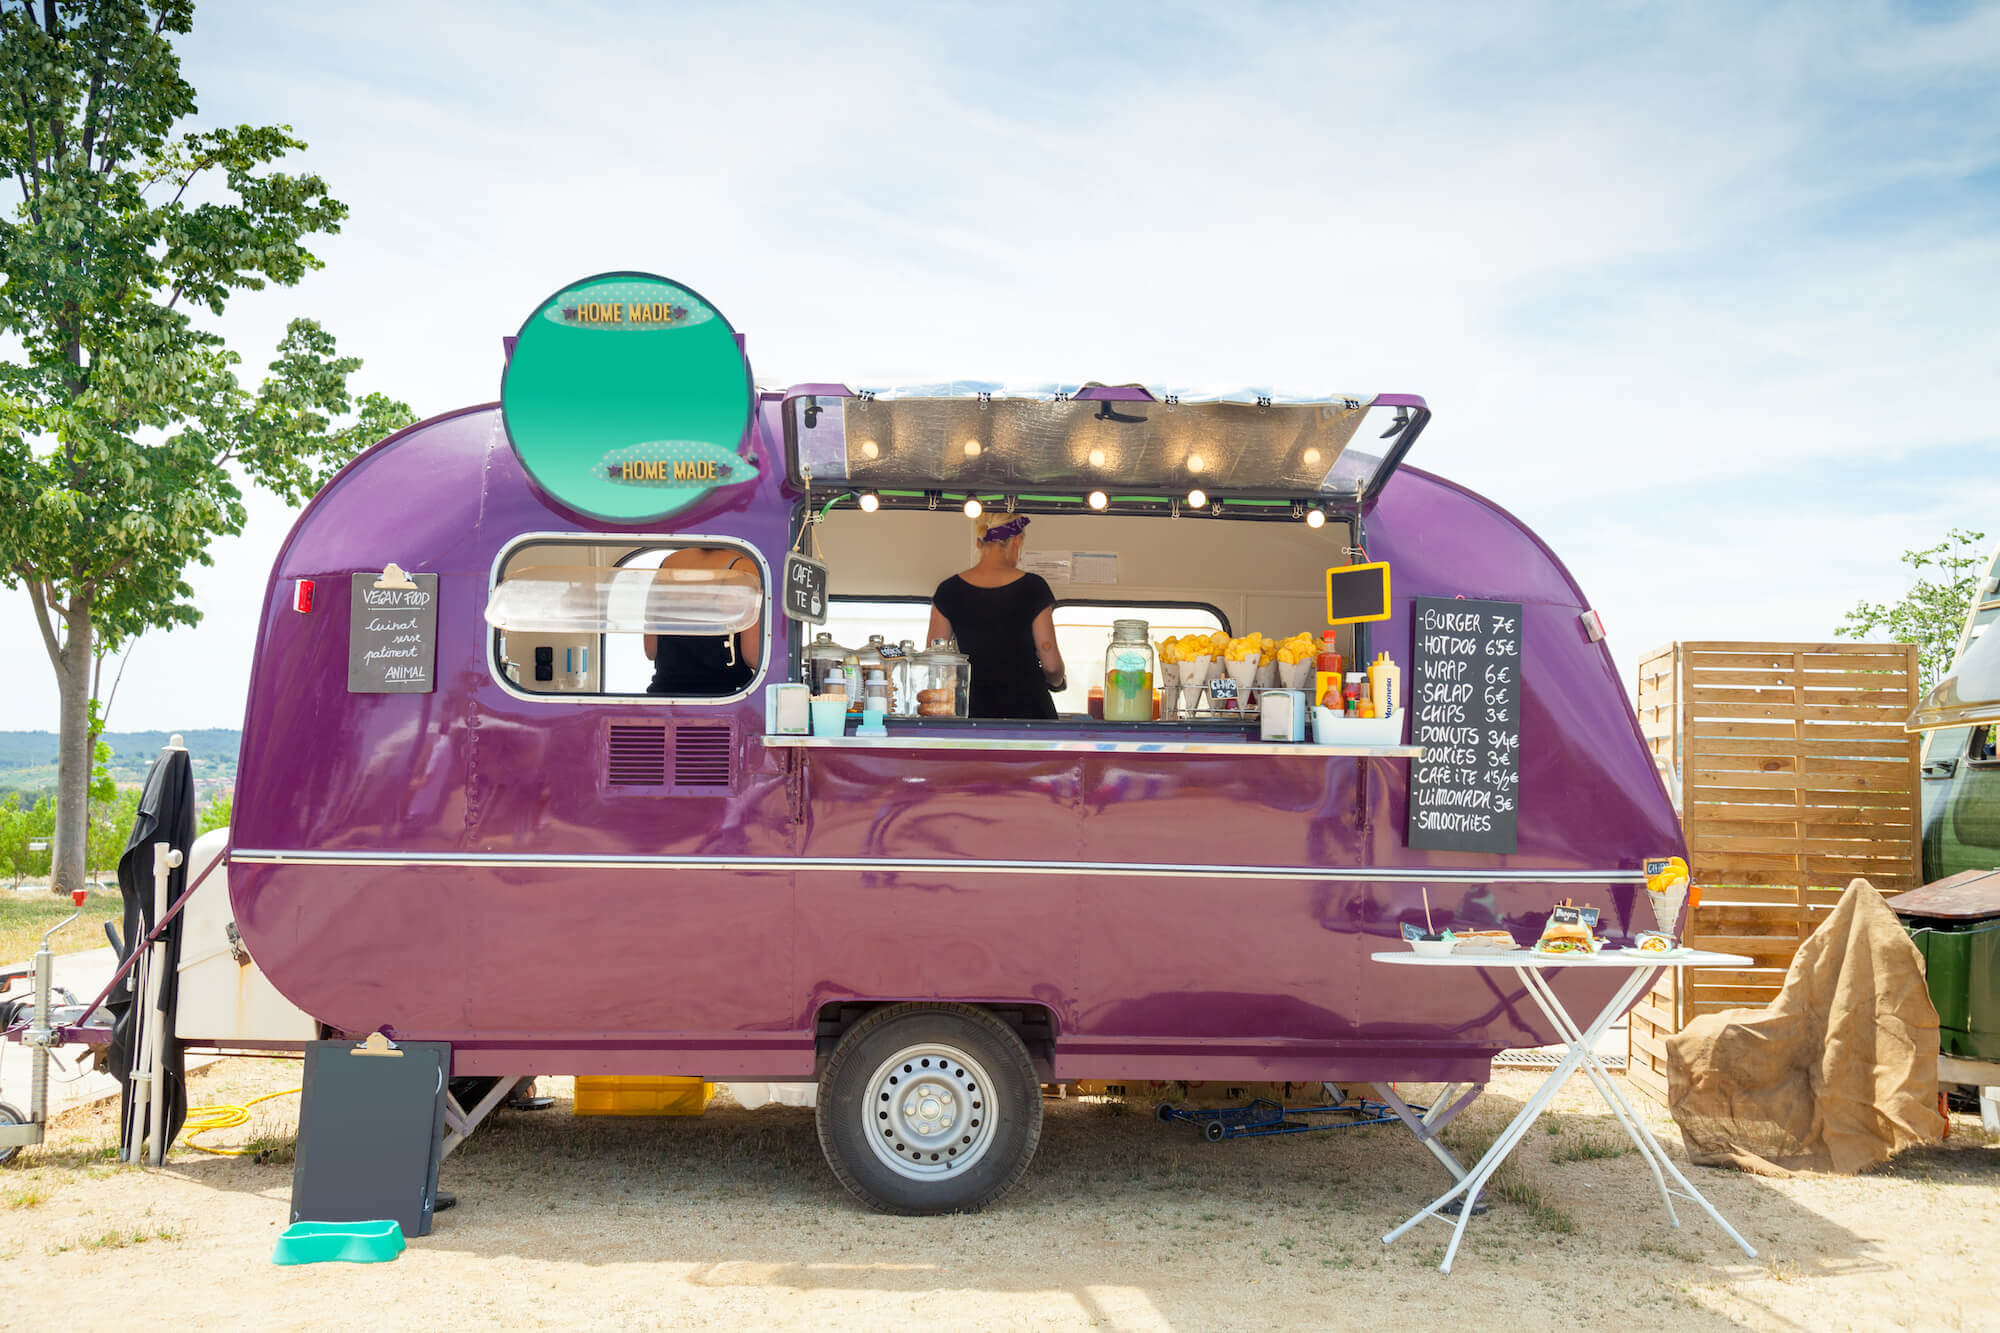 The popularity of street food vans and the delicious food they produce makes catering vans an attractive choice for events and gatherings.